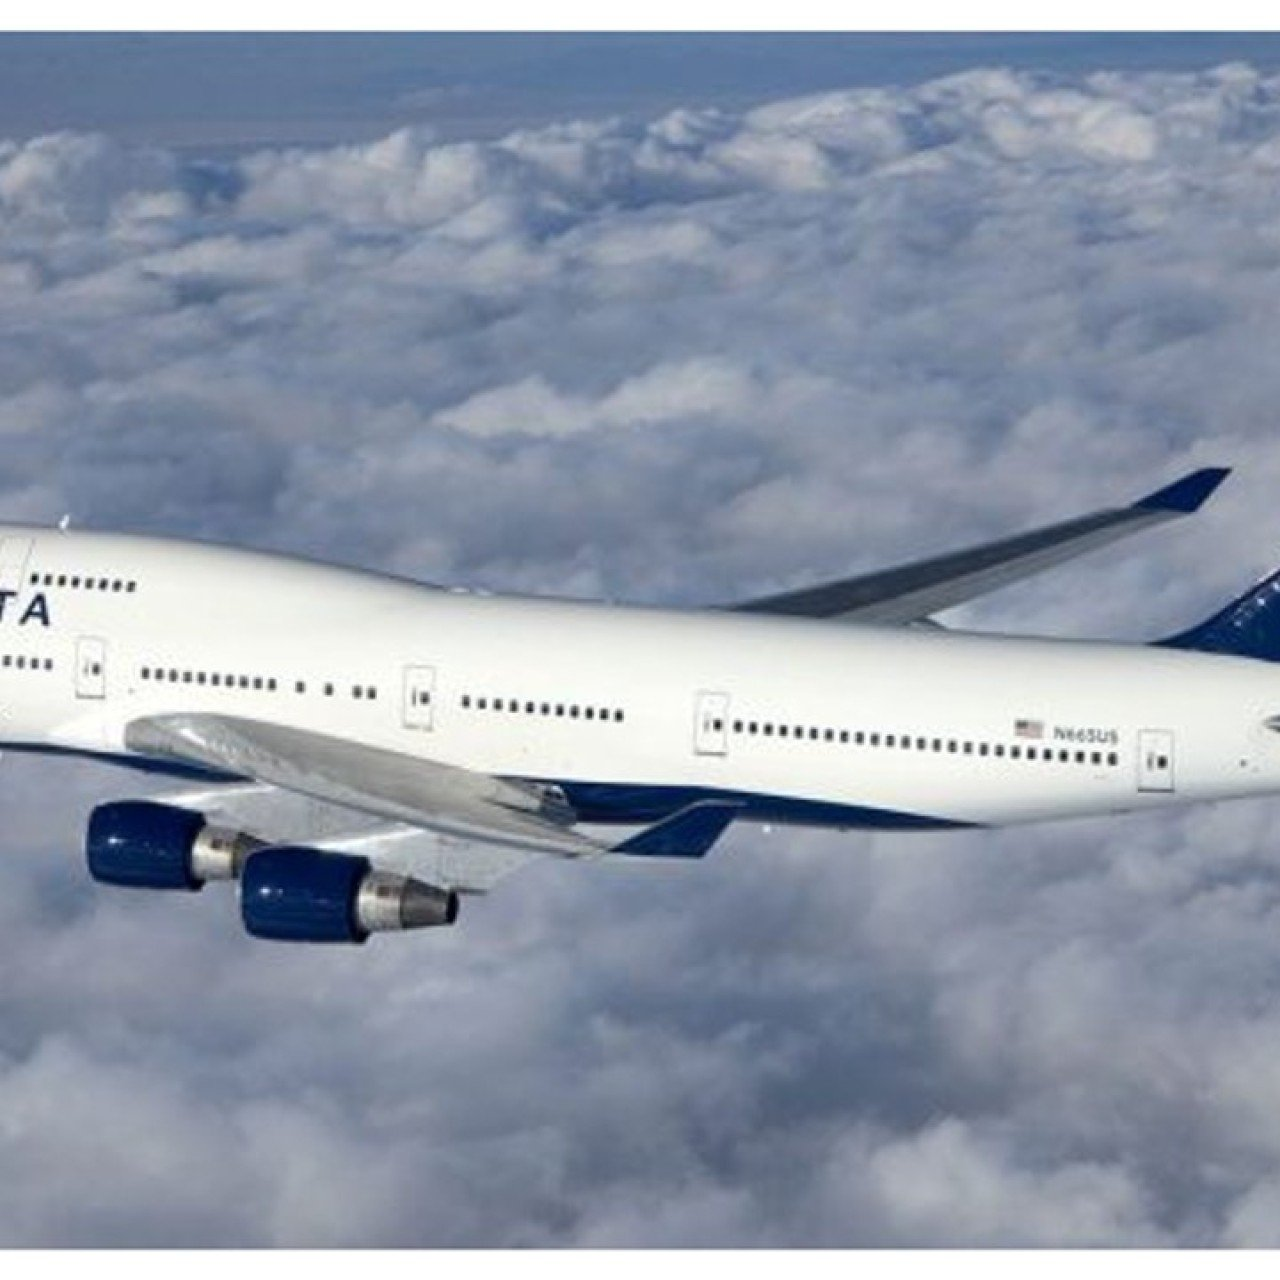 Boeing 747 takes last US commercial flight as iconic jumbo